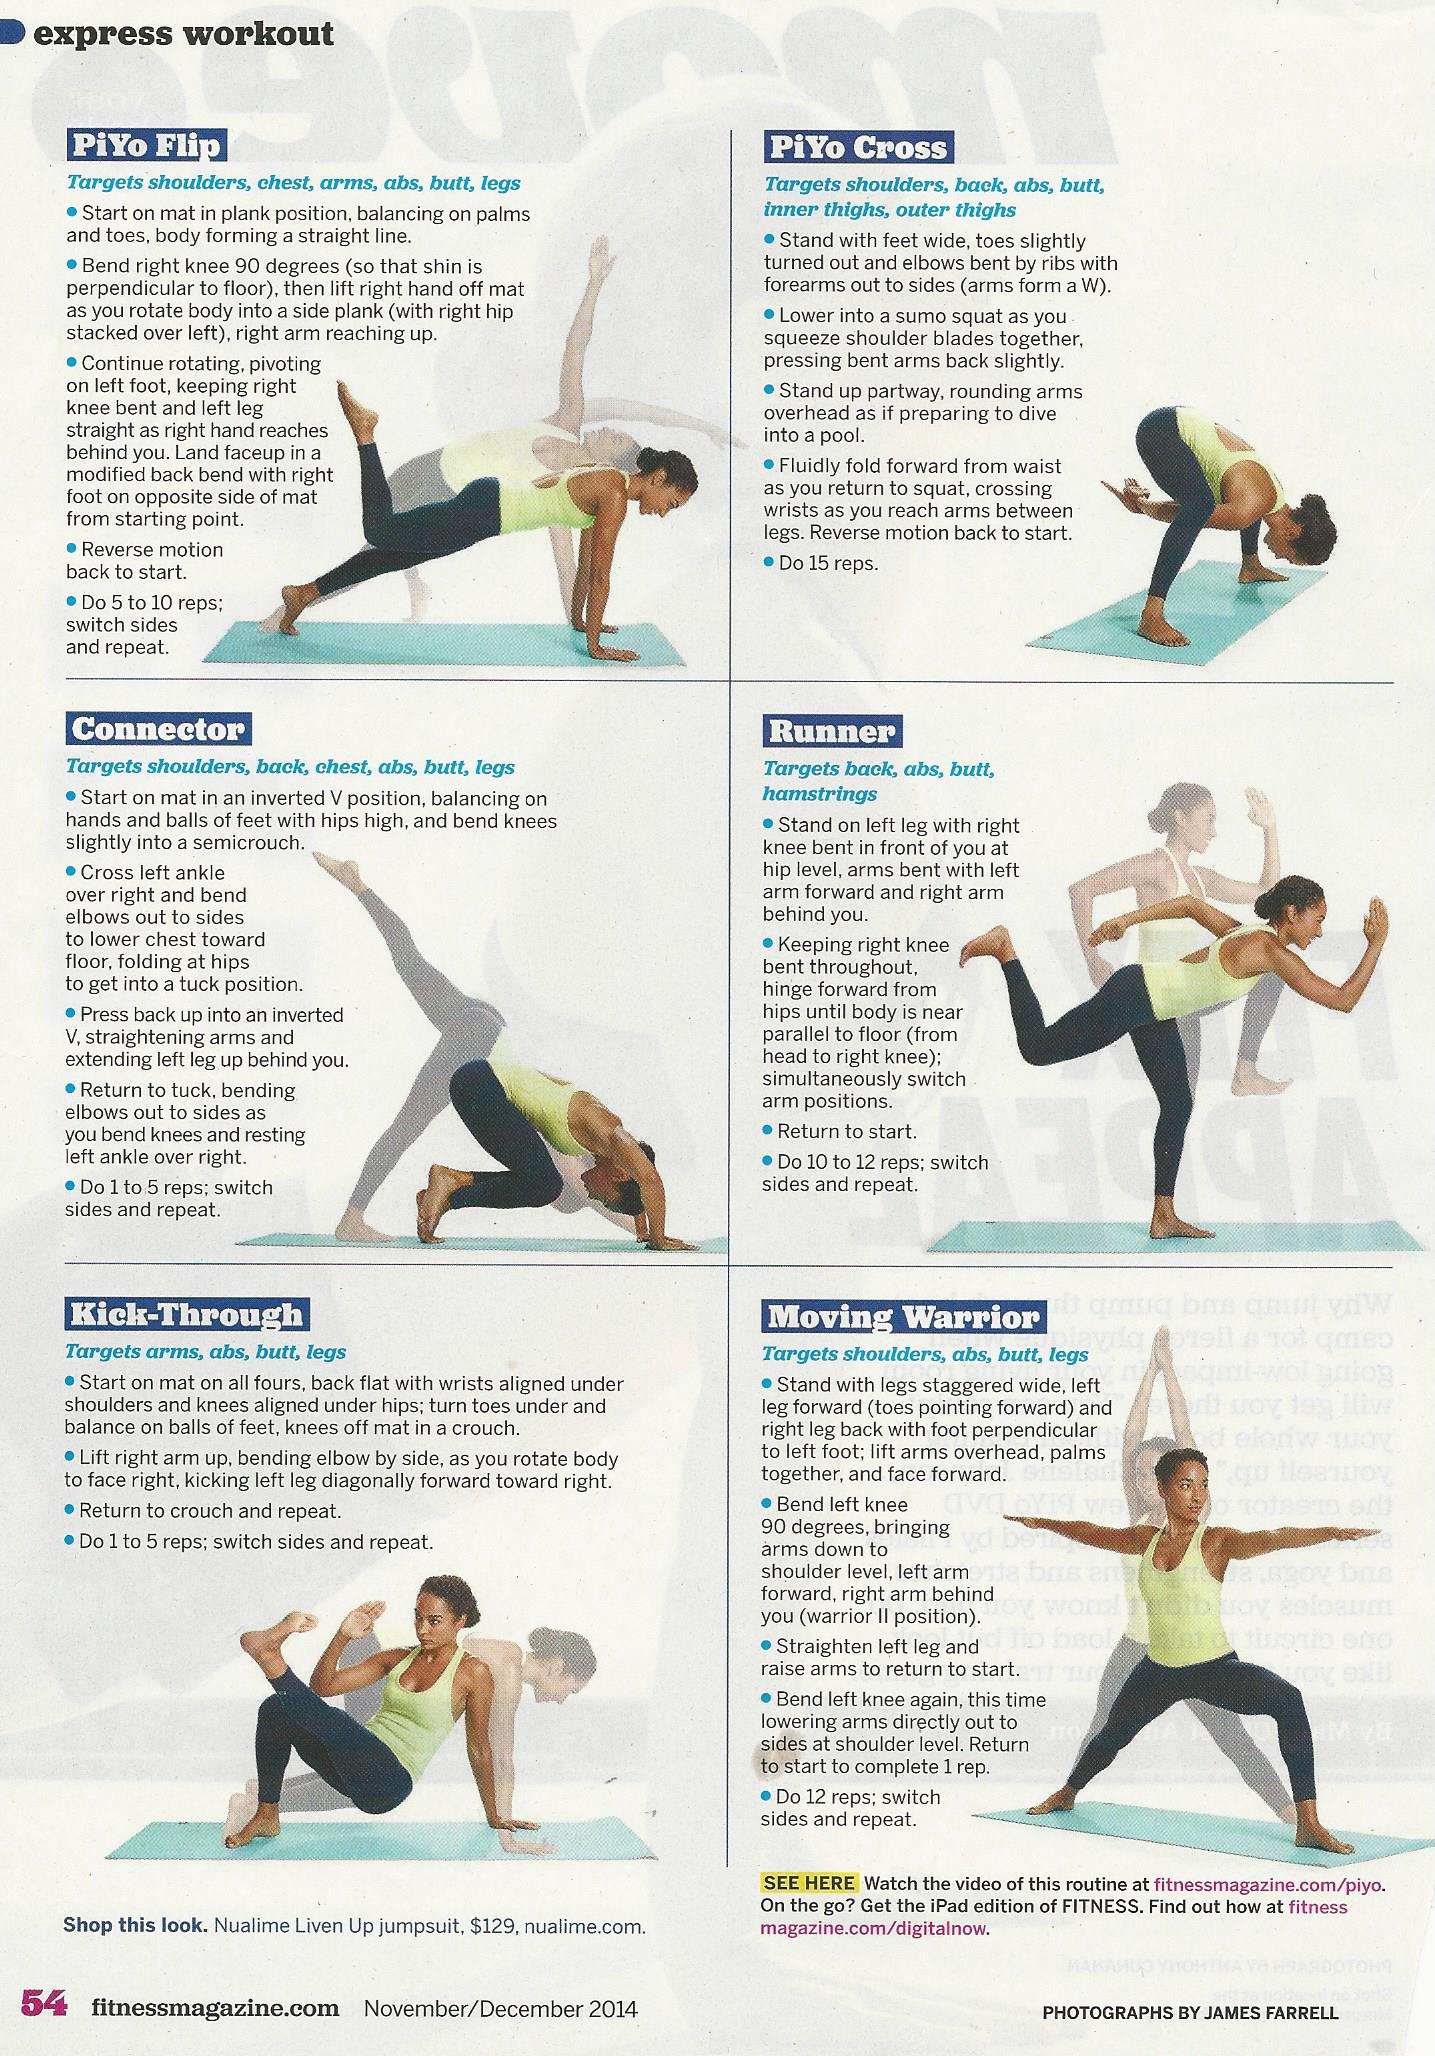 What Is The Piyo Workout Schedule